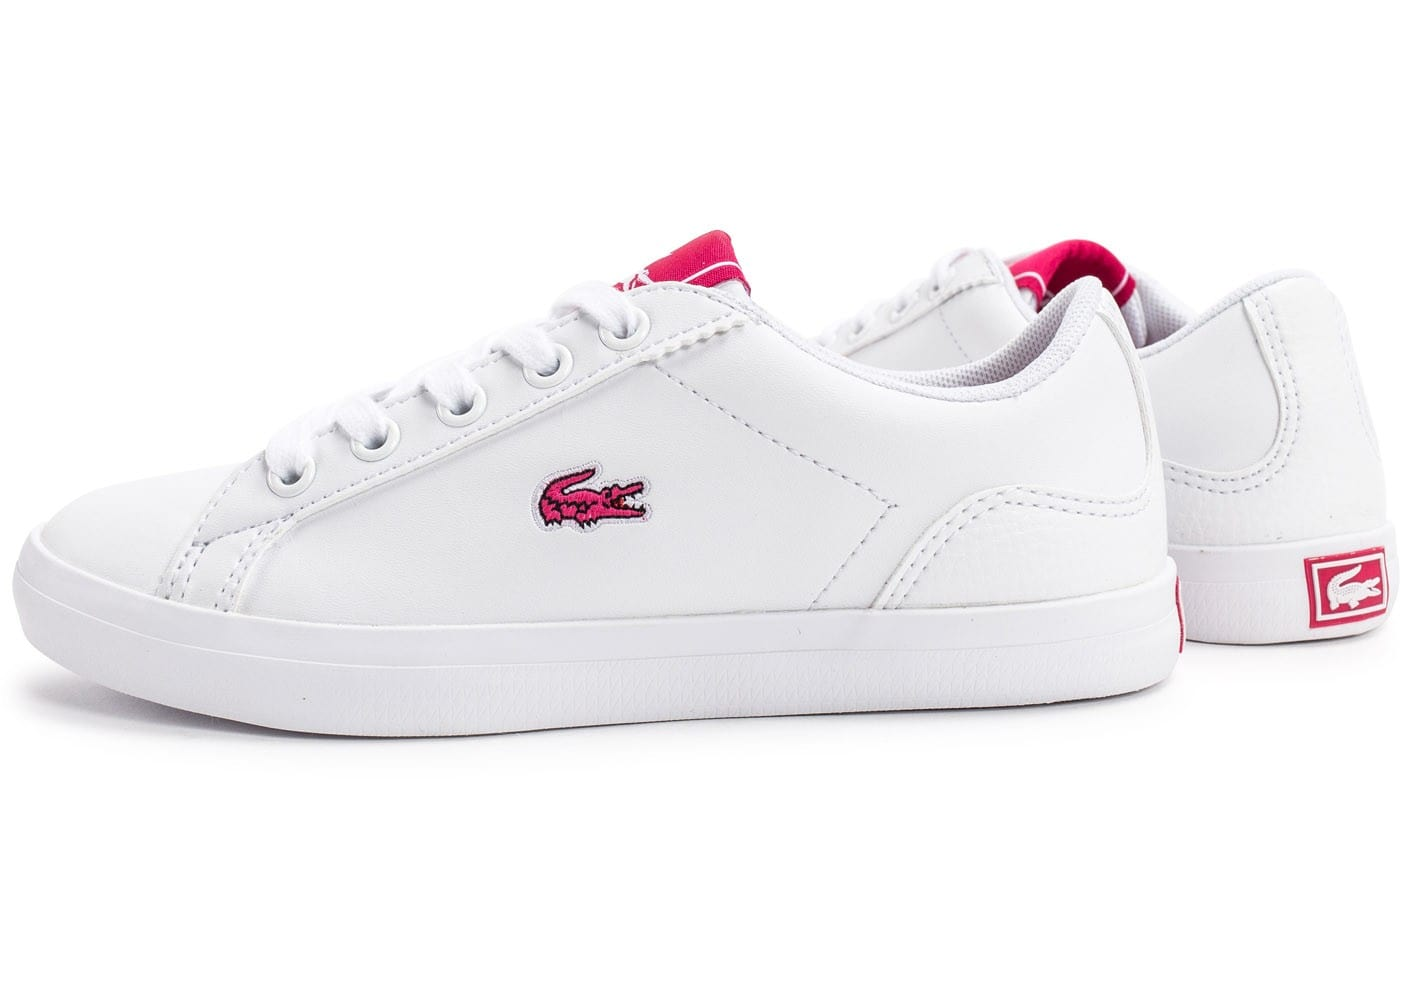 Blanche Iqyaxhhsw Et Rose Lacoste Chaussure Ow1HqUS